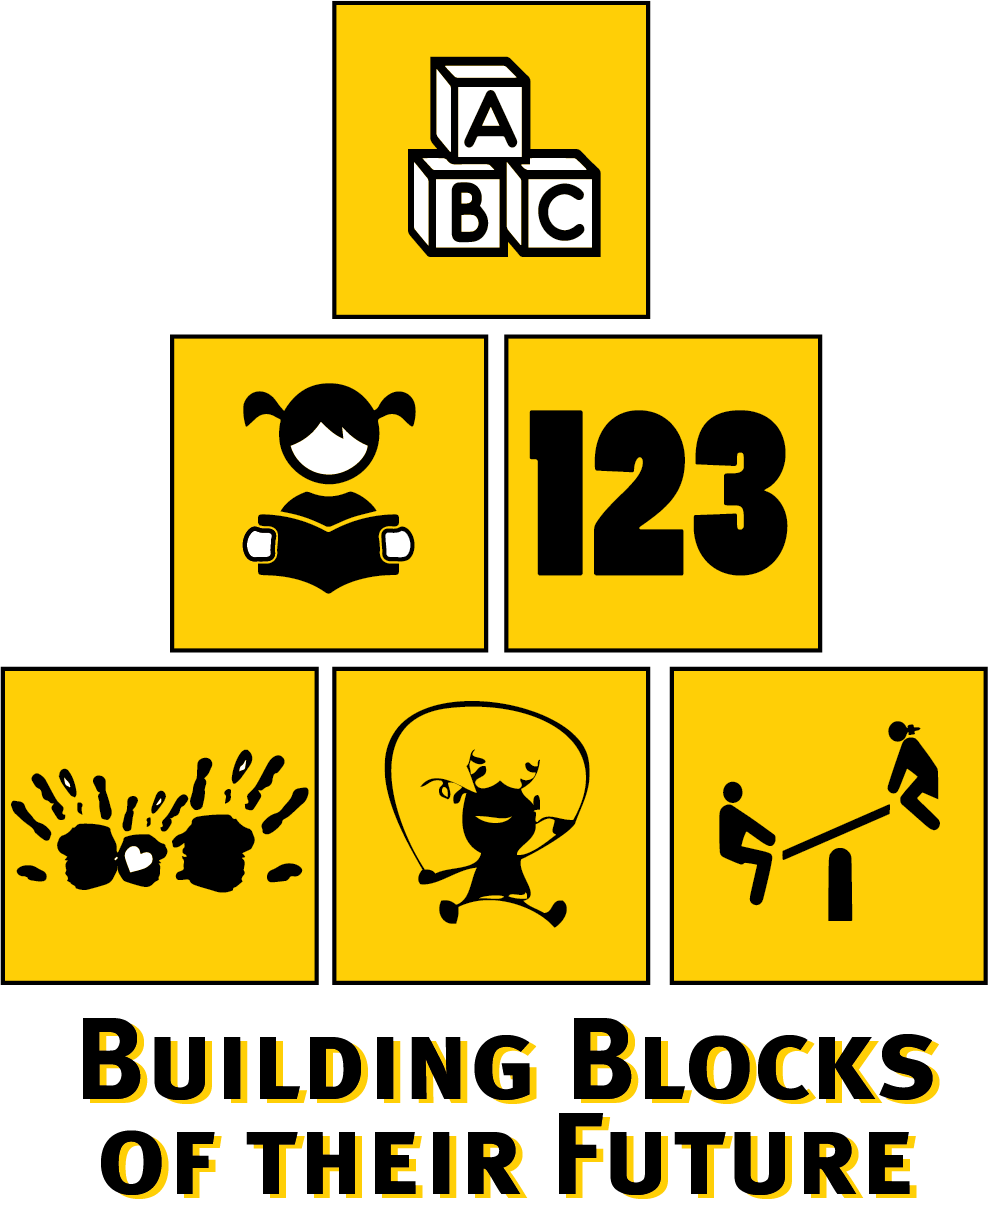 Early Childhood image representing building blocks